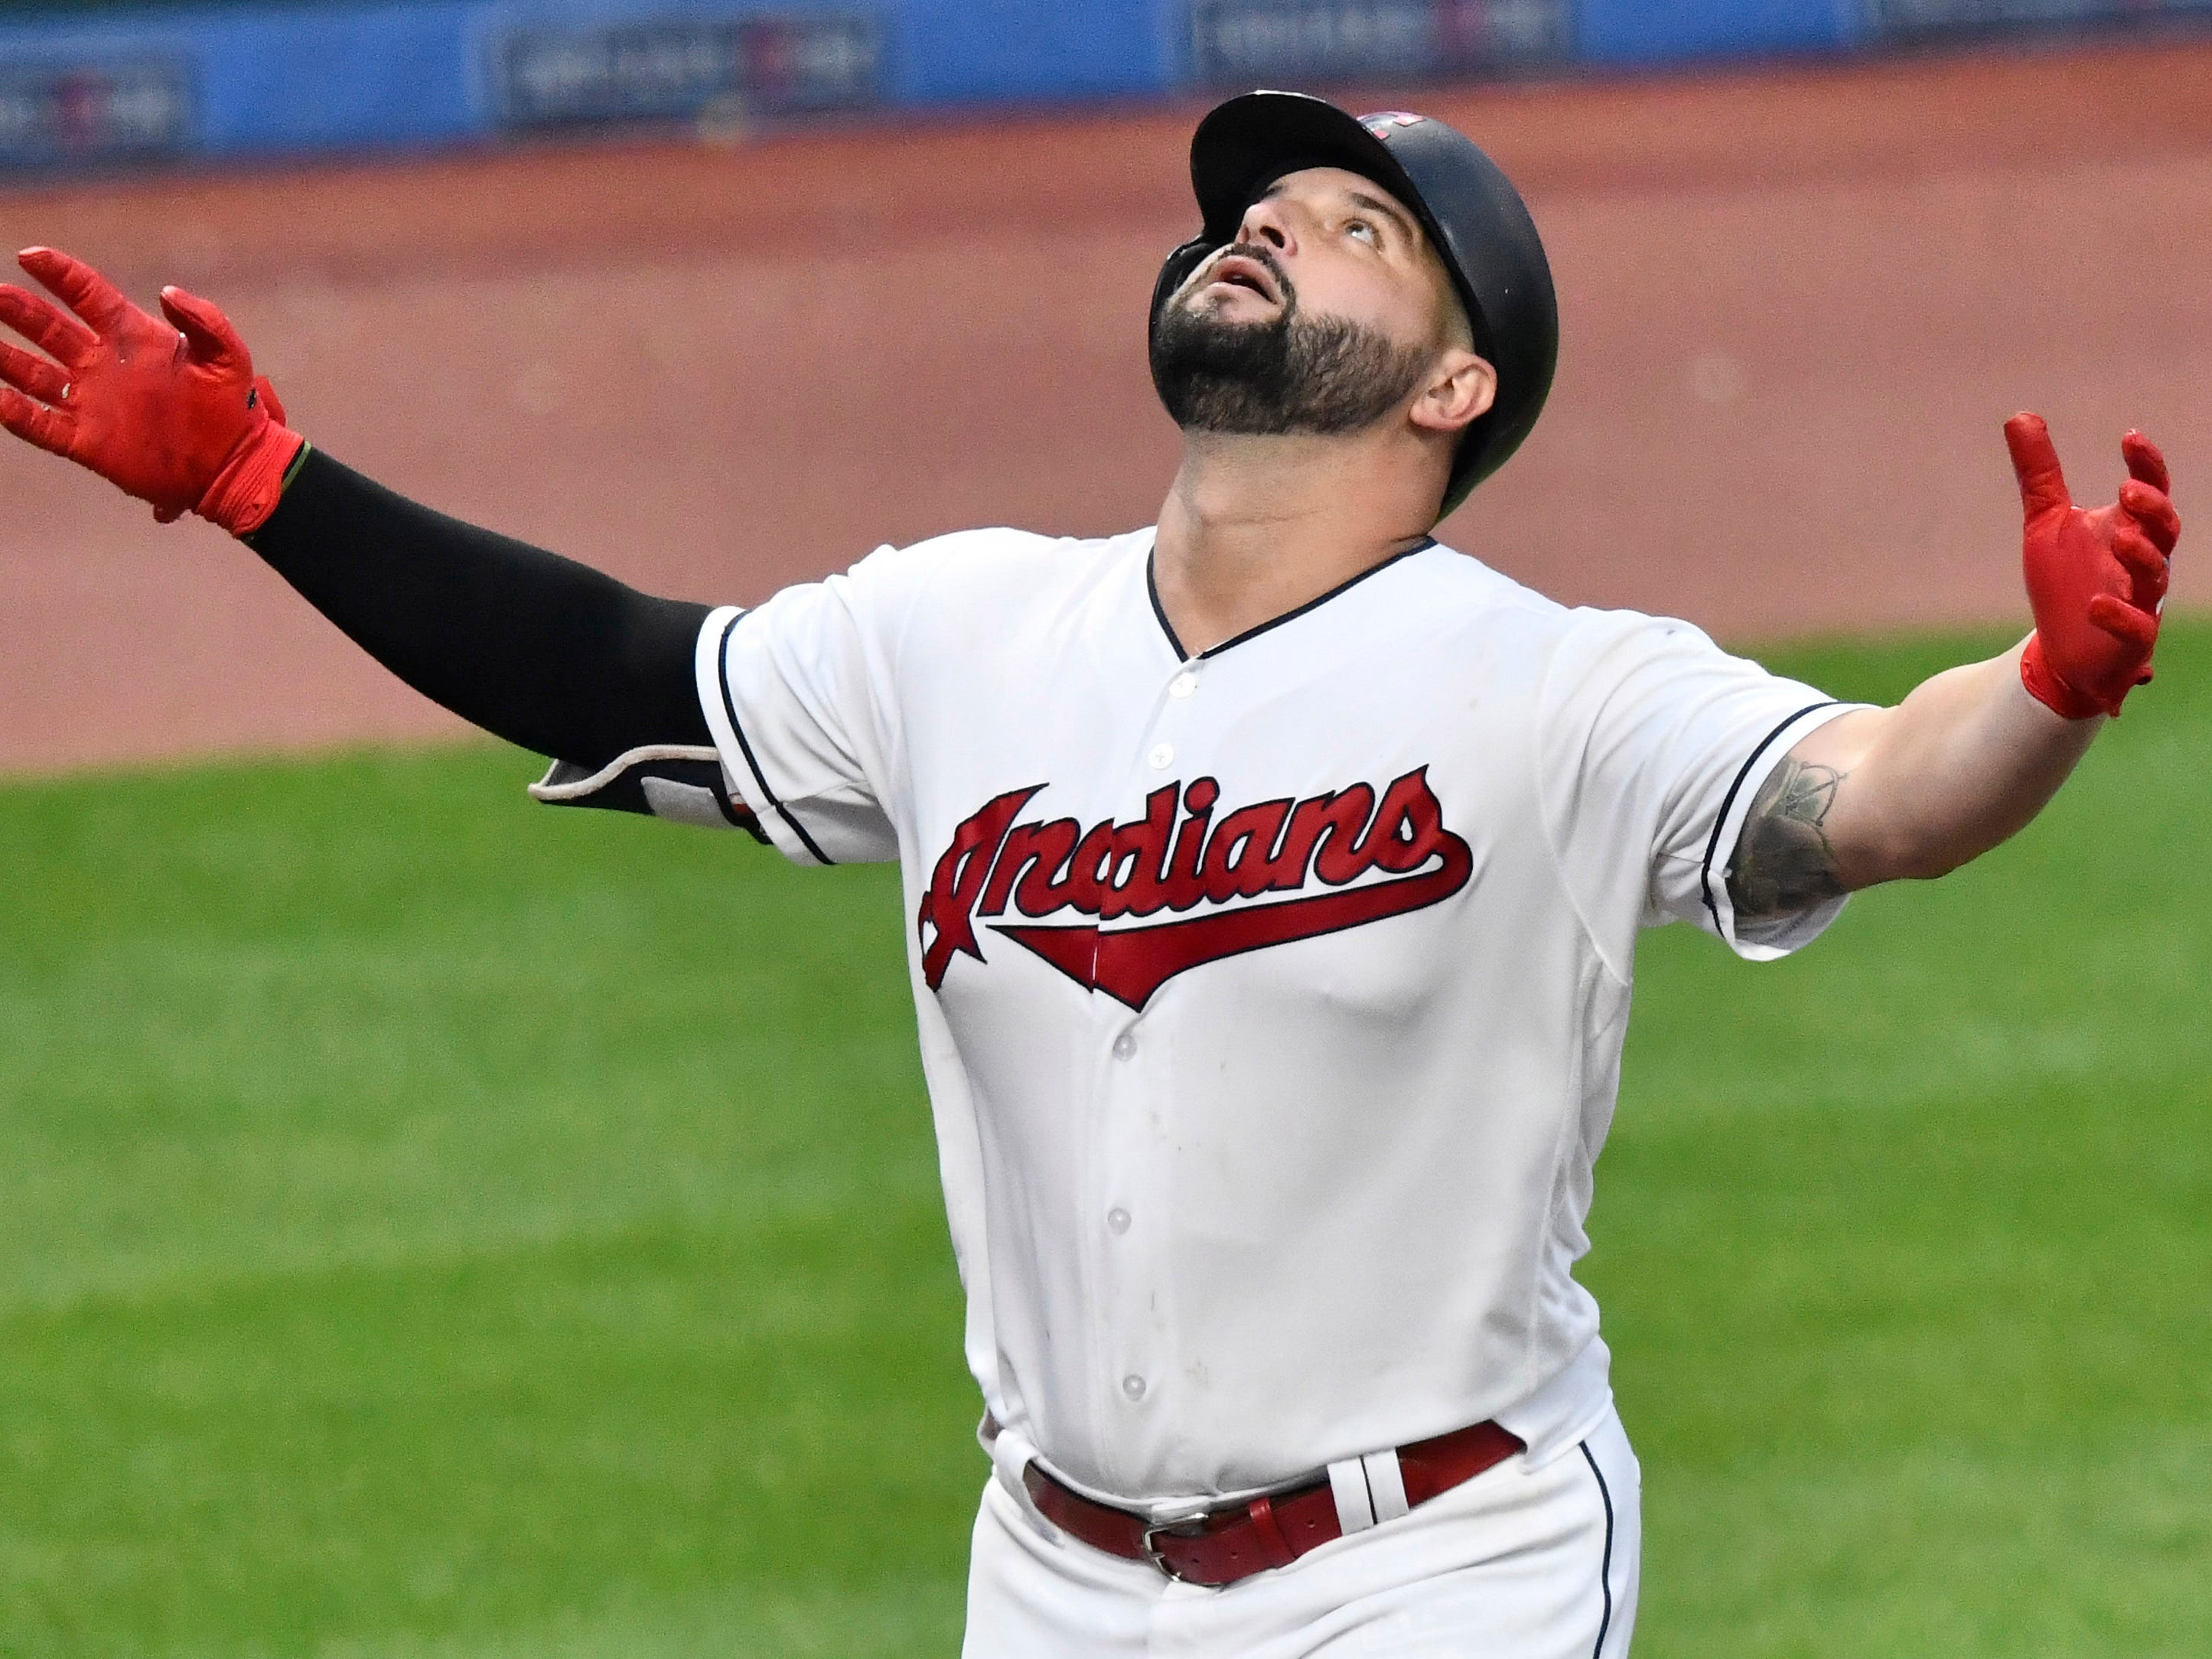 Dec. 15: The Indians traded 1B Yonder Alonso to the White Sox for minor league OF Alex Call.